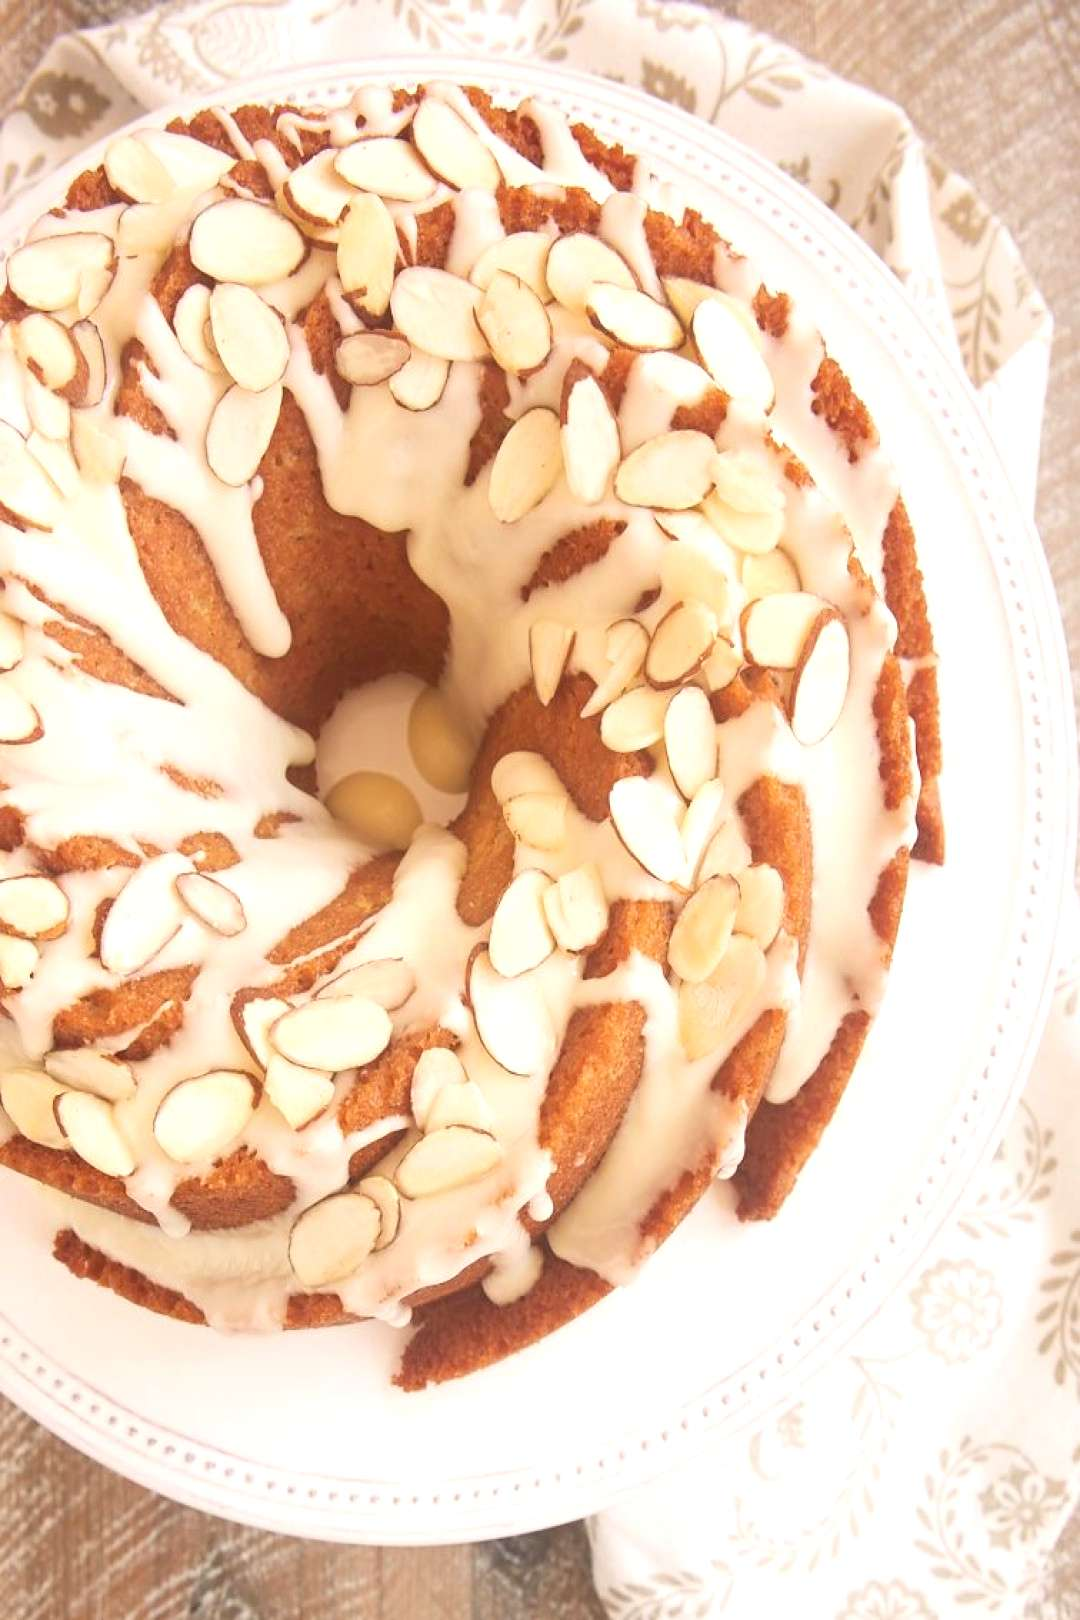 If you love almonds in a big way, you must try this fantastic Amaretto Almond Bundt Cake. Such a lo